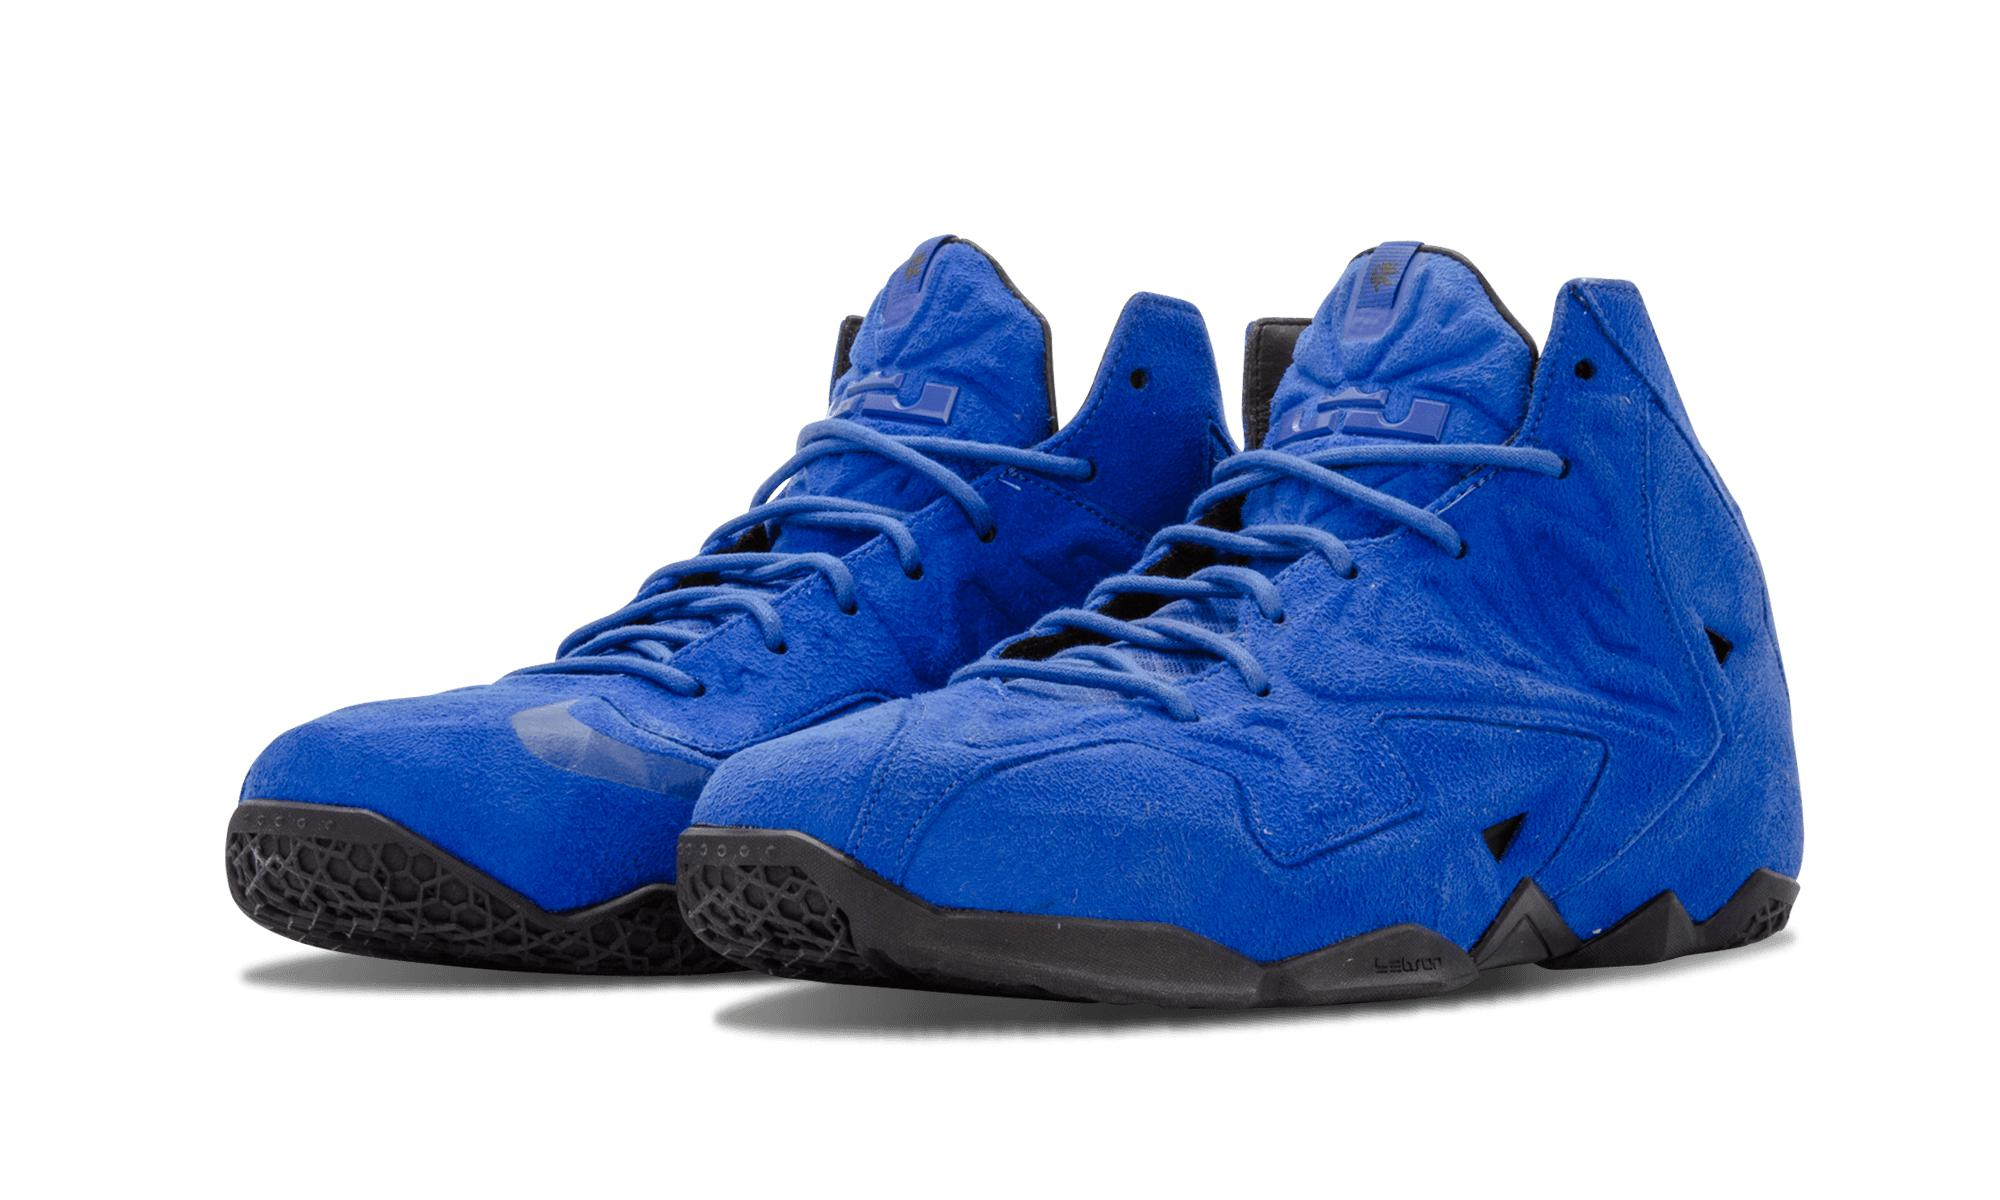 7a7161a9c885 Nike - Blue Lebron 11 Ext Suede Qs for Men - Lyst. View fullscreen